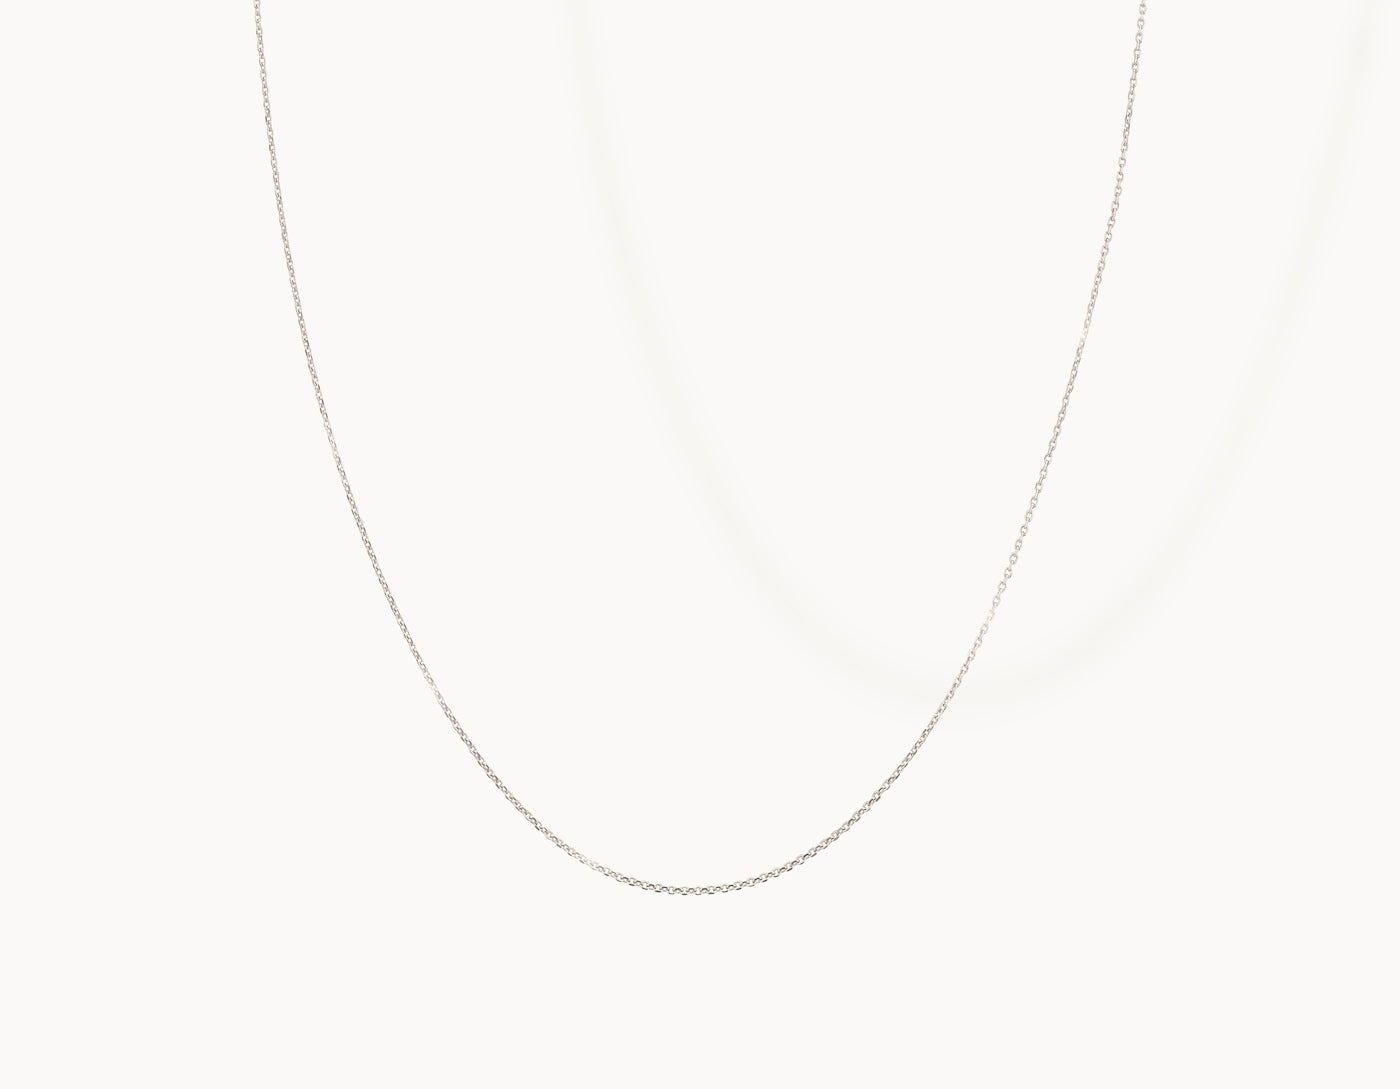 Delicate simple diamond cut Shimmer Chain Necklace by Vrai, 14K White Gold